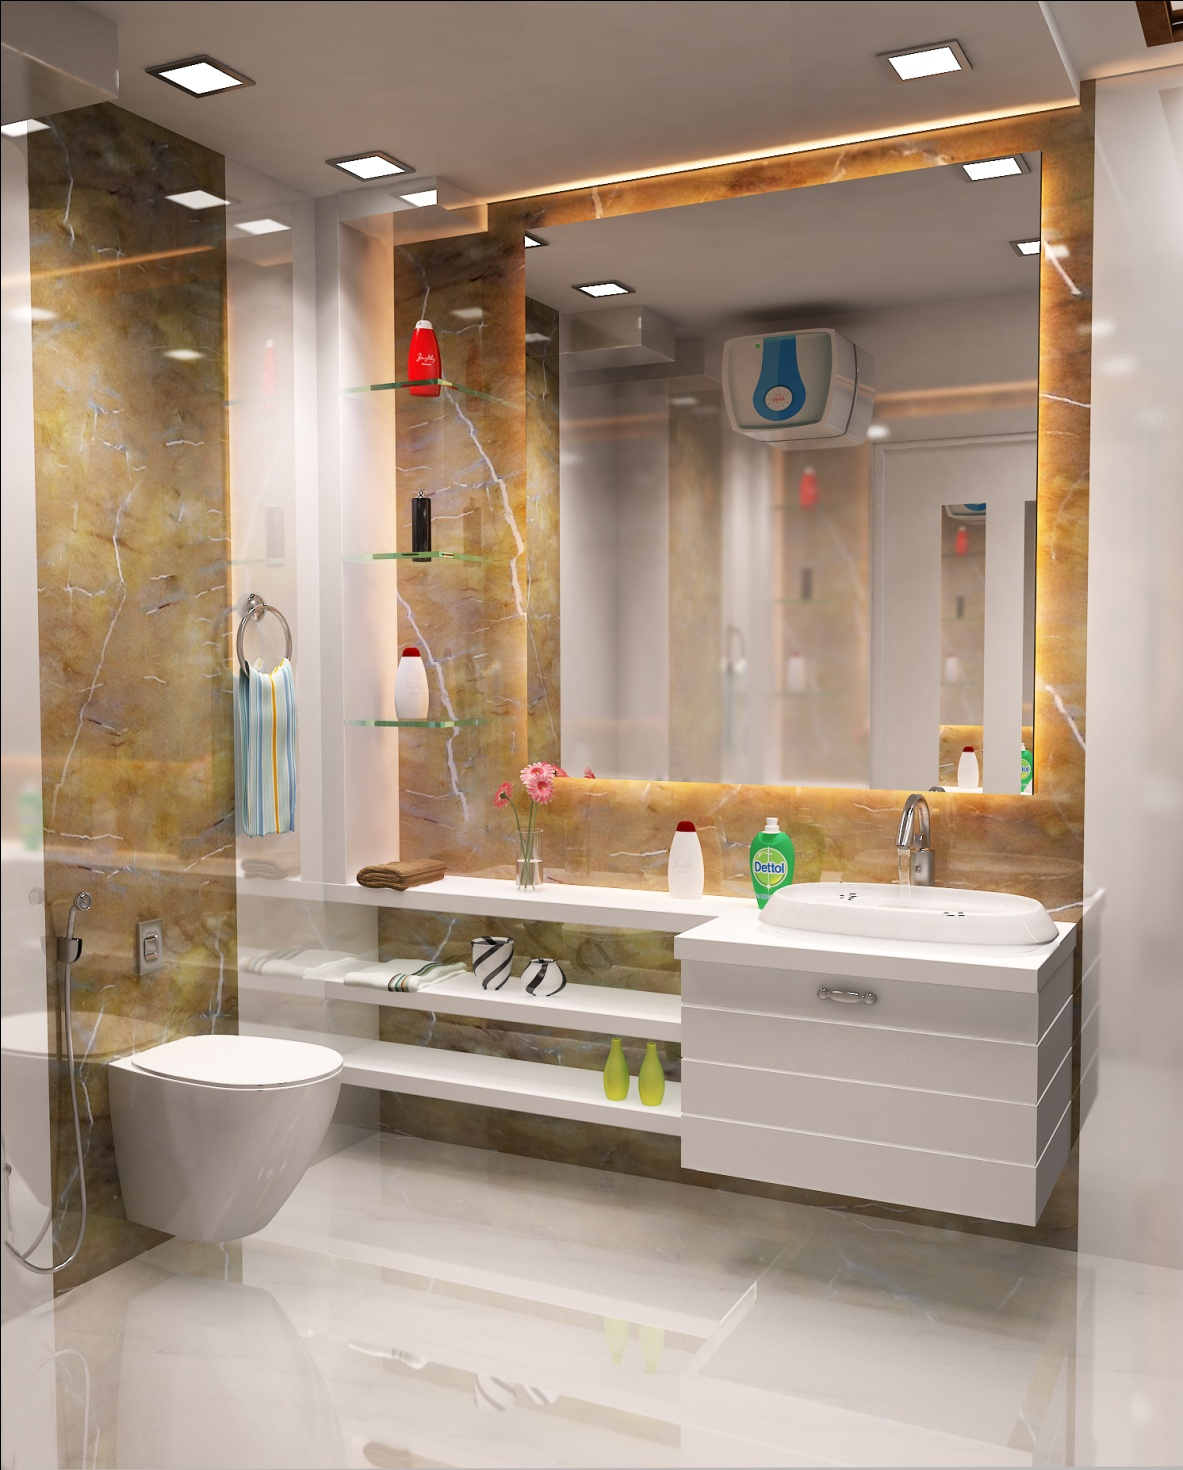 bathroom design vastu shastra interesting bathroom designs kolkata default houzz image intended - Bathroom Designs Kolkata